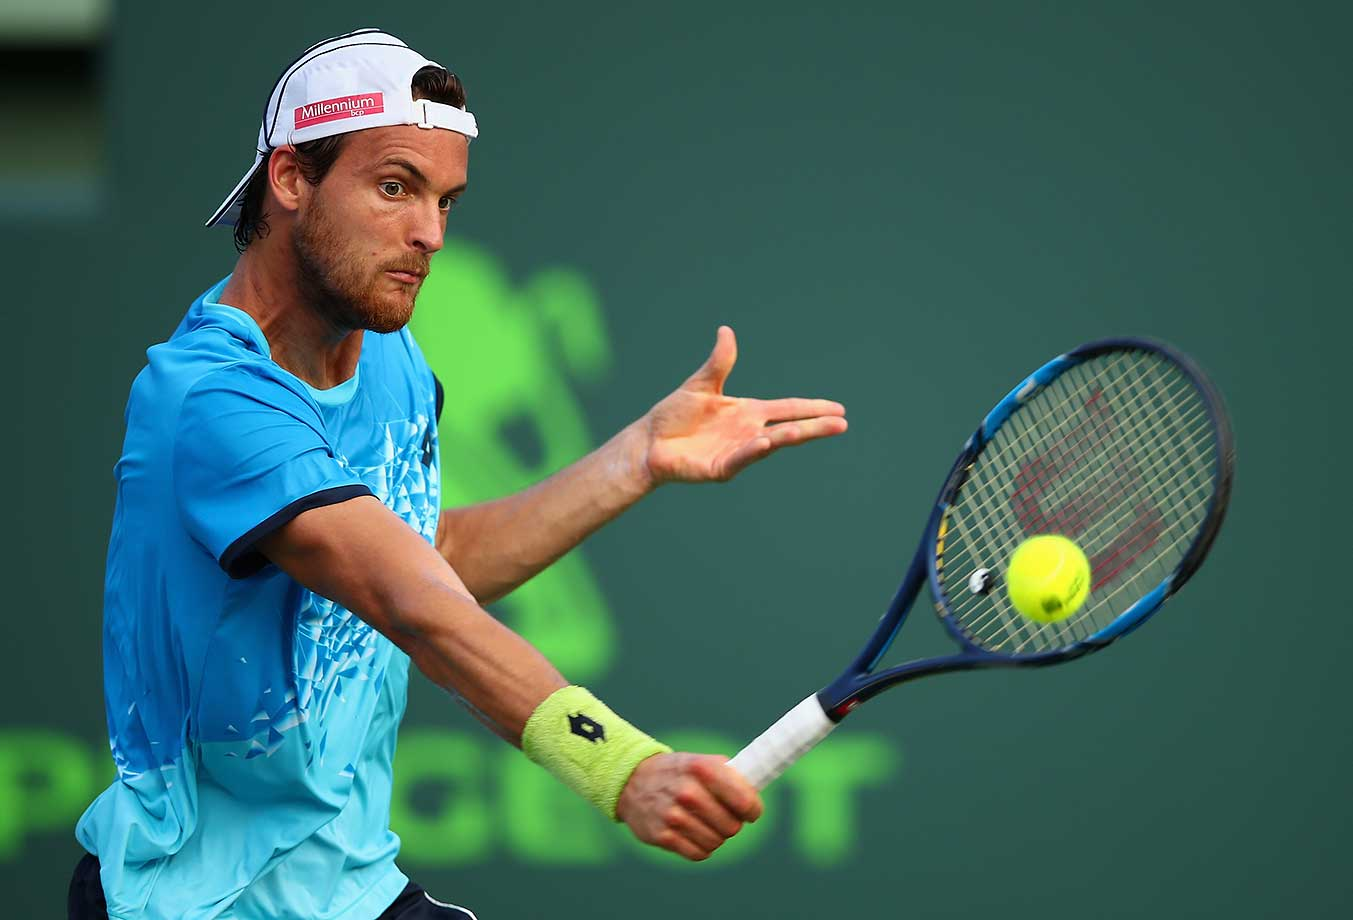 Joao Sousa of Portugal plays a backhand against Novak Djokovic in their third round match at the Miami Open.